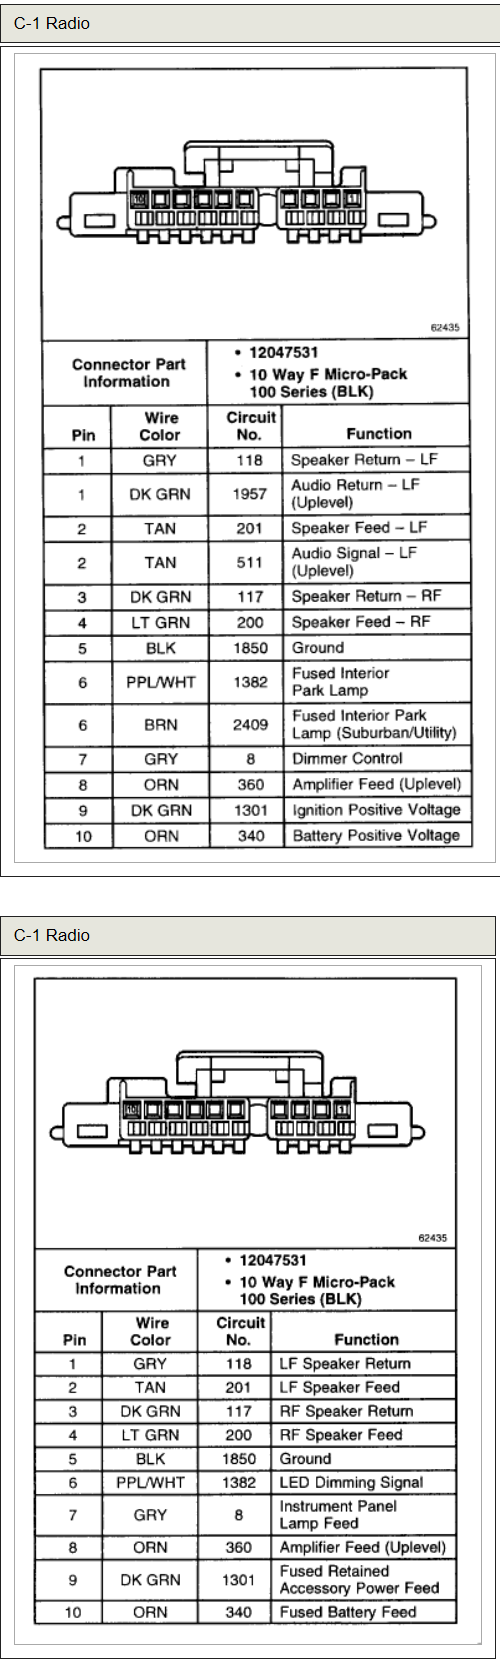 2005 chevy colorado stereo wiring diagram wiring diagrams 2007 gmc canyon radio wiring diagram home diagrams 2010 chevy colorado radio wiring diagram 2006 bu stereo source